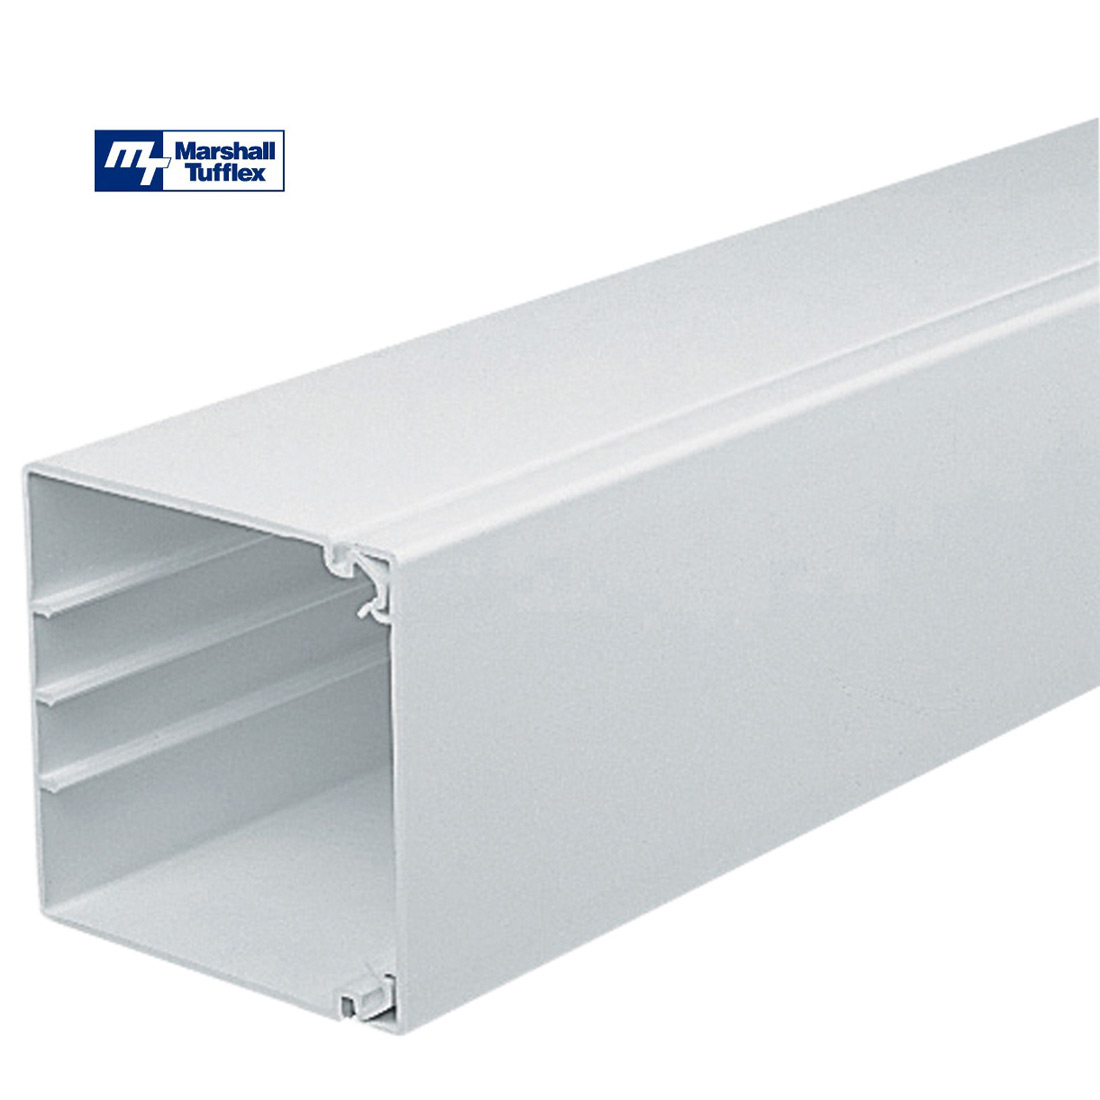 Maxi Trunking